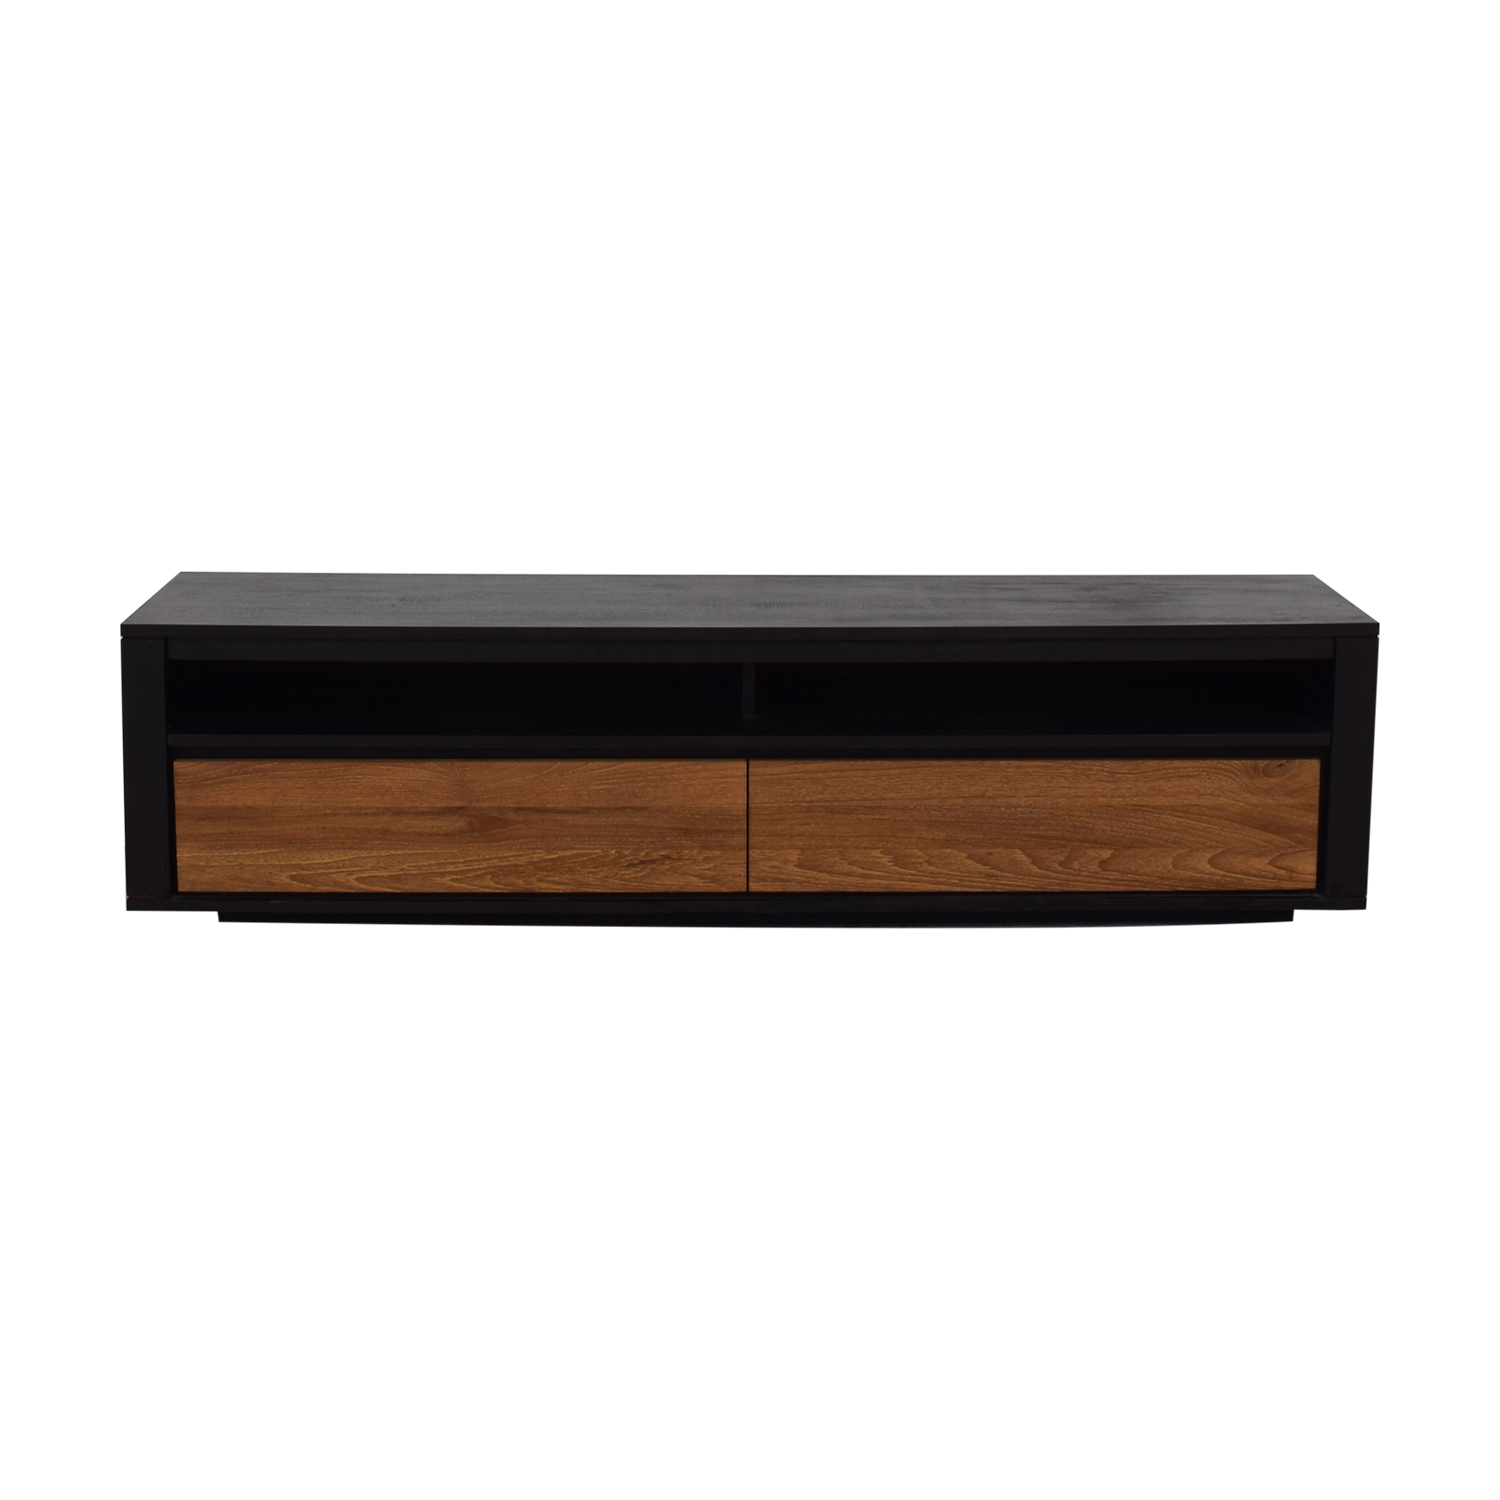 shop ABC Carpet & Home Form Teak Media Console ABC Carpet & Home Media Units